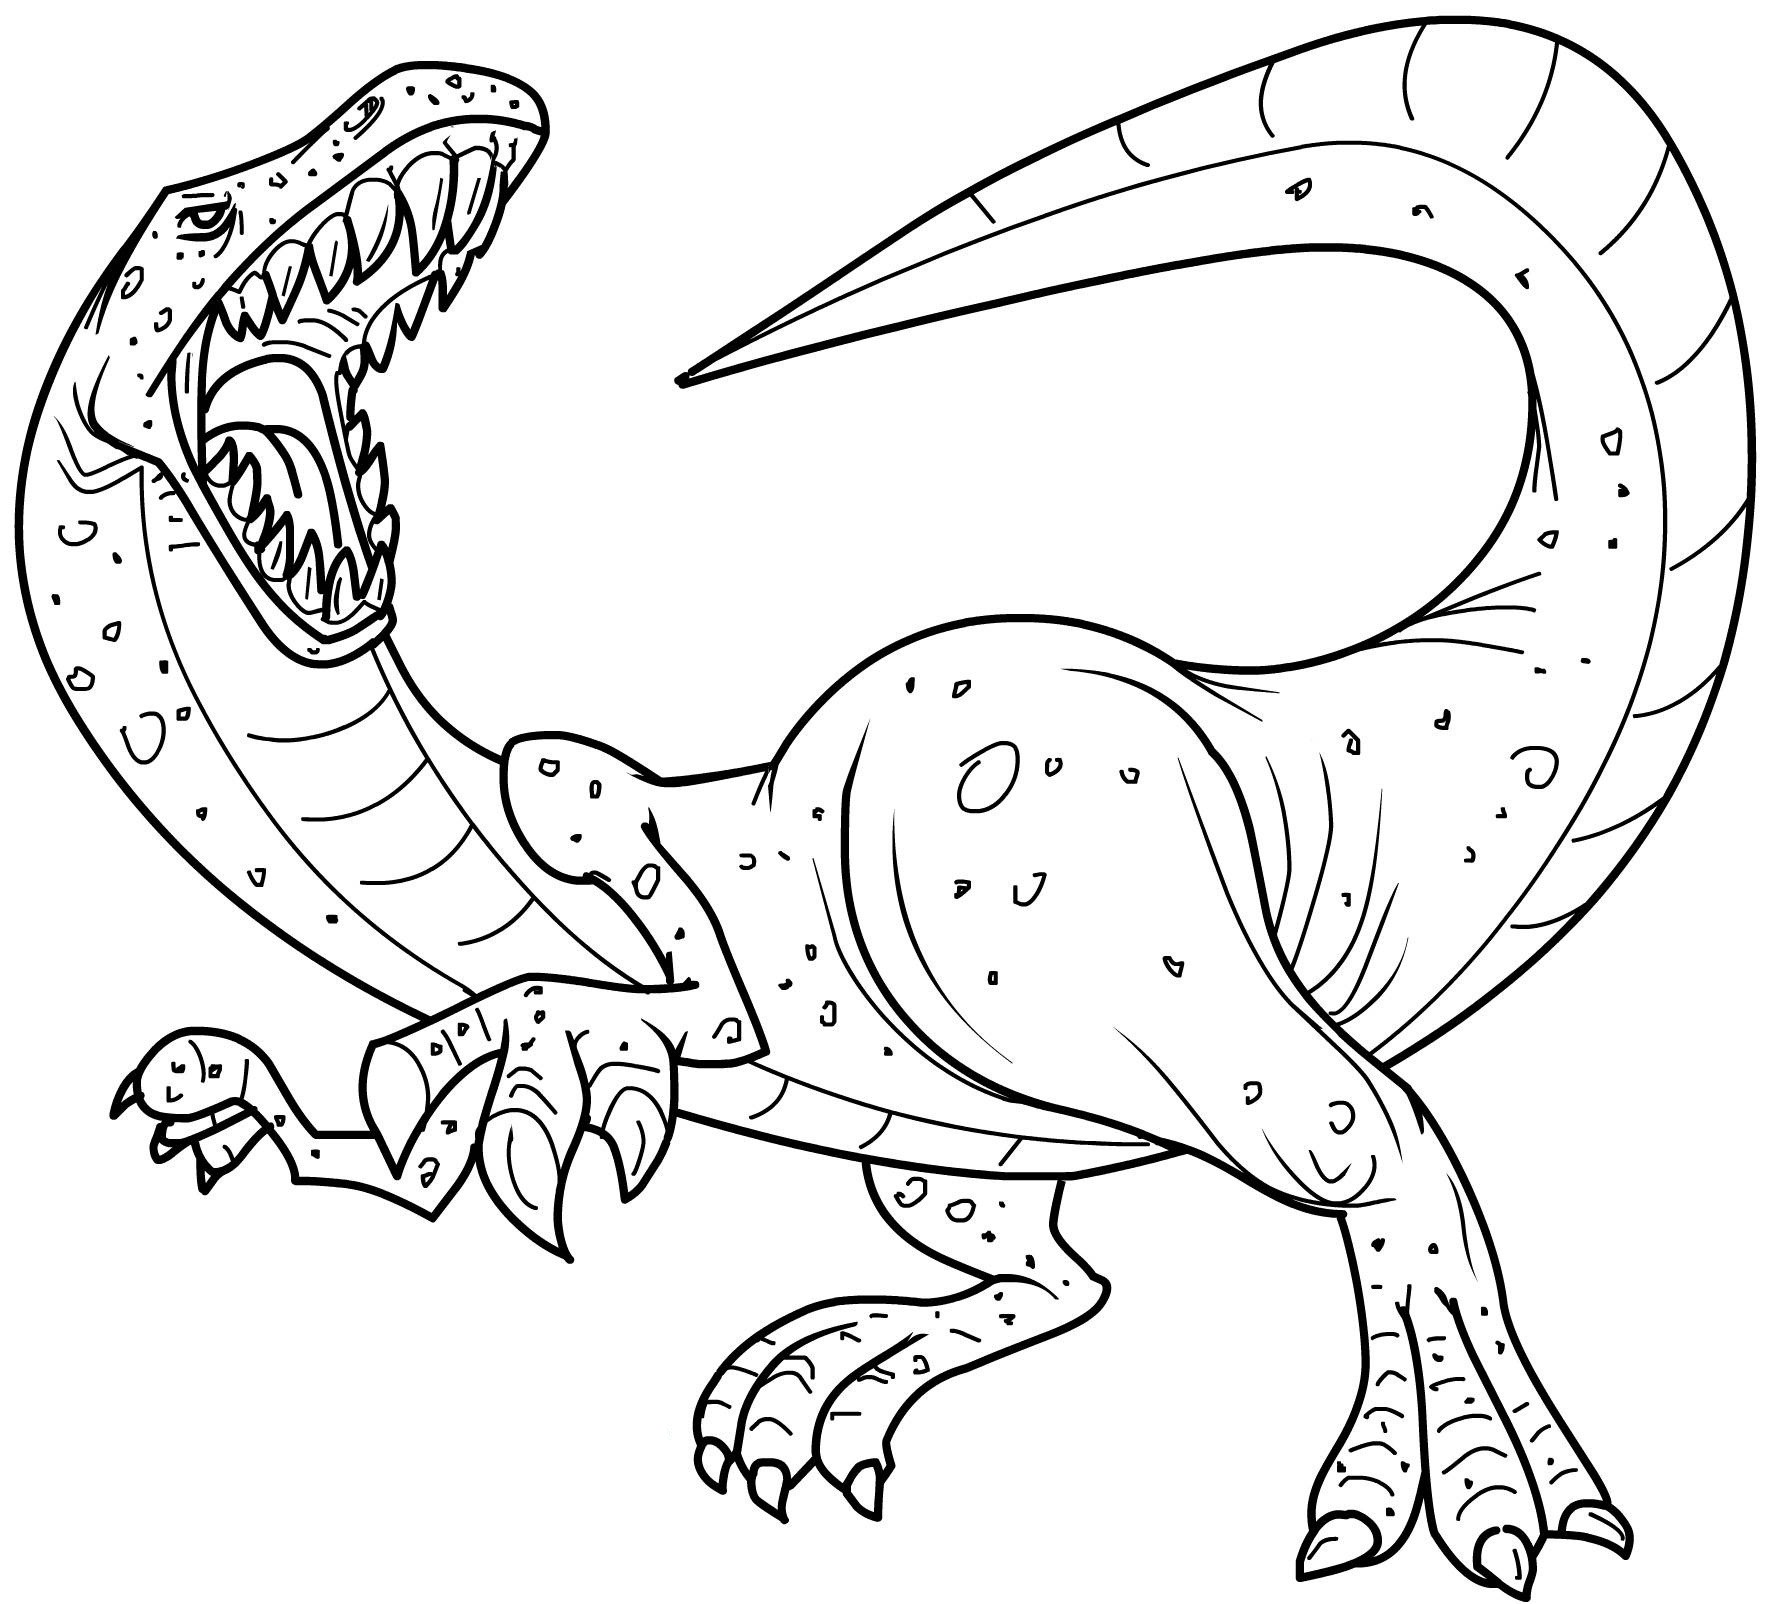 Dinosaur Coloring Pages Printable Free Timykids Free Coloring Pages For